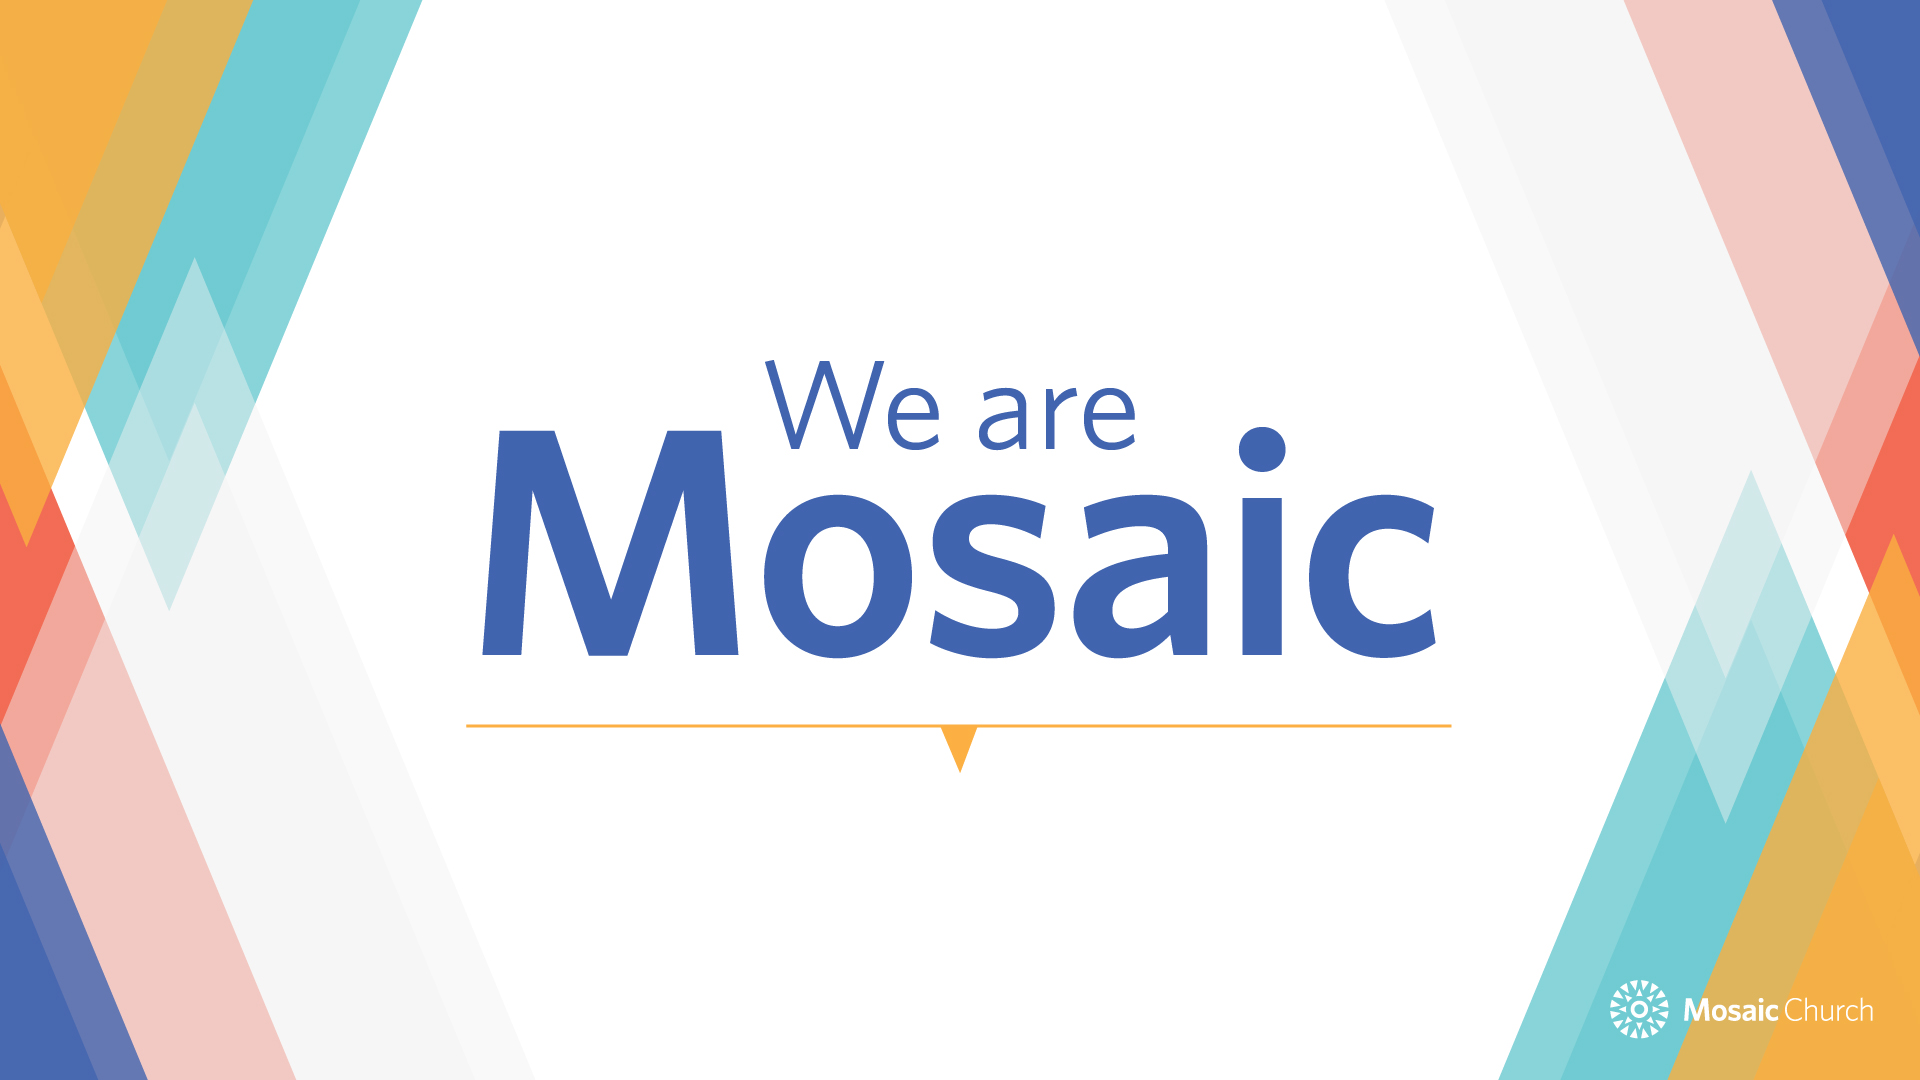 Mosaic_WeAreMosaicSeries_slides-01.jpg